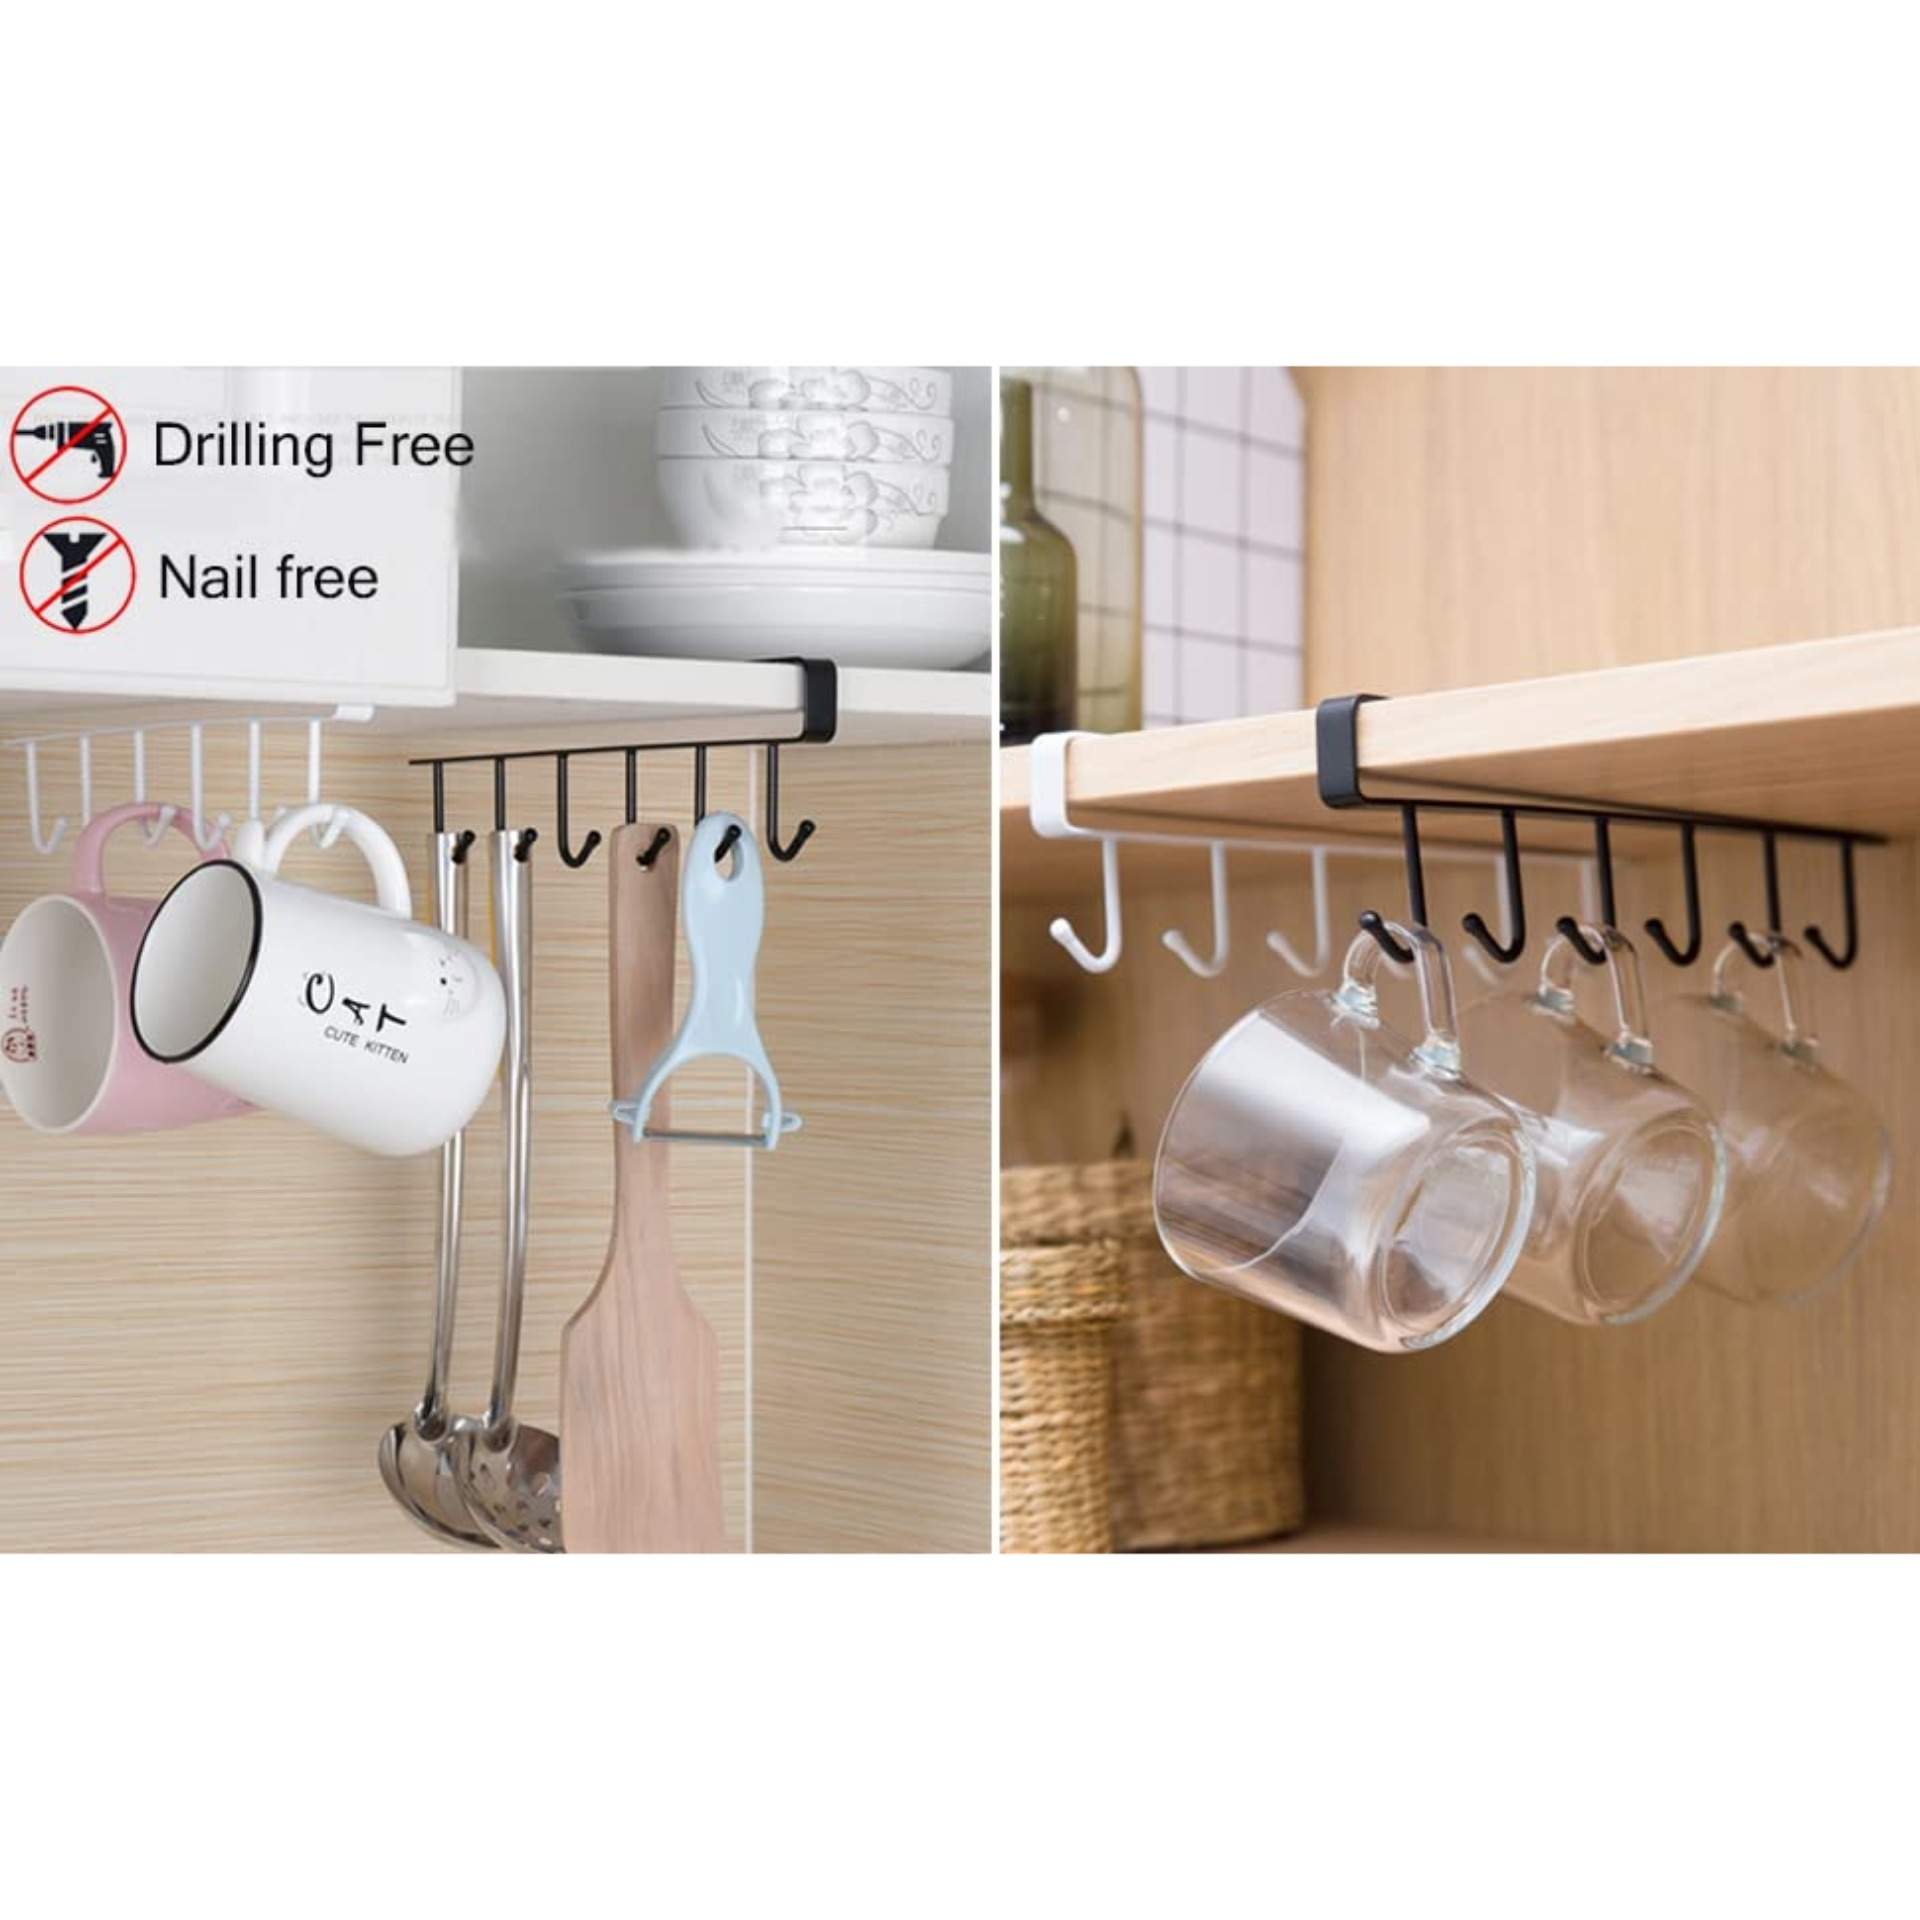 Mug Holder Under Cabinet Adhesive Cup Hooks Drilling Free Buy Online At Best Prices In Pakistan Daraz Pk